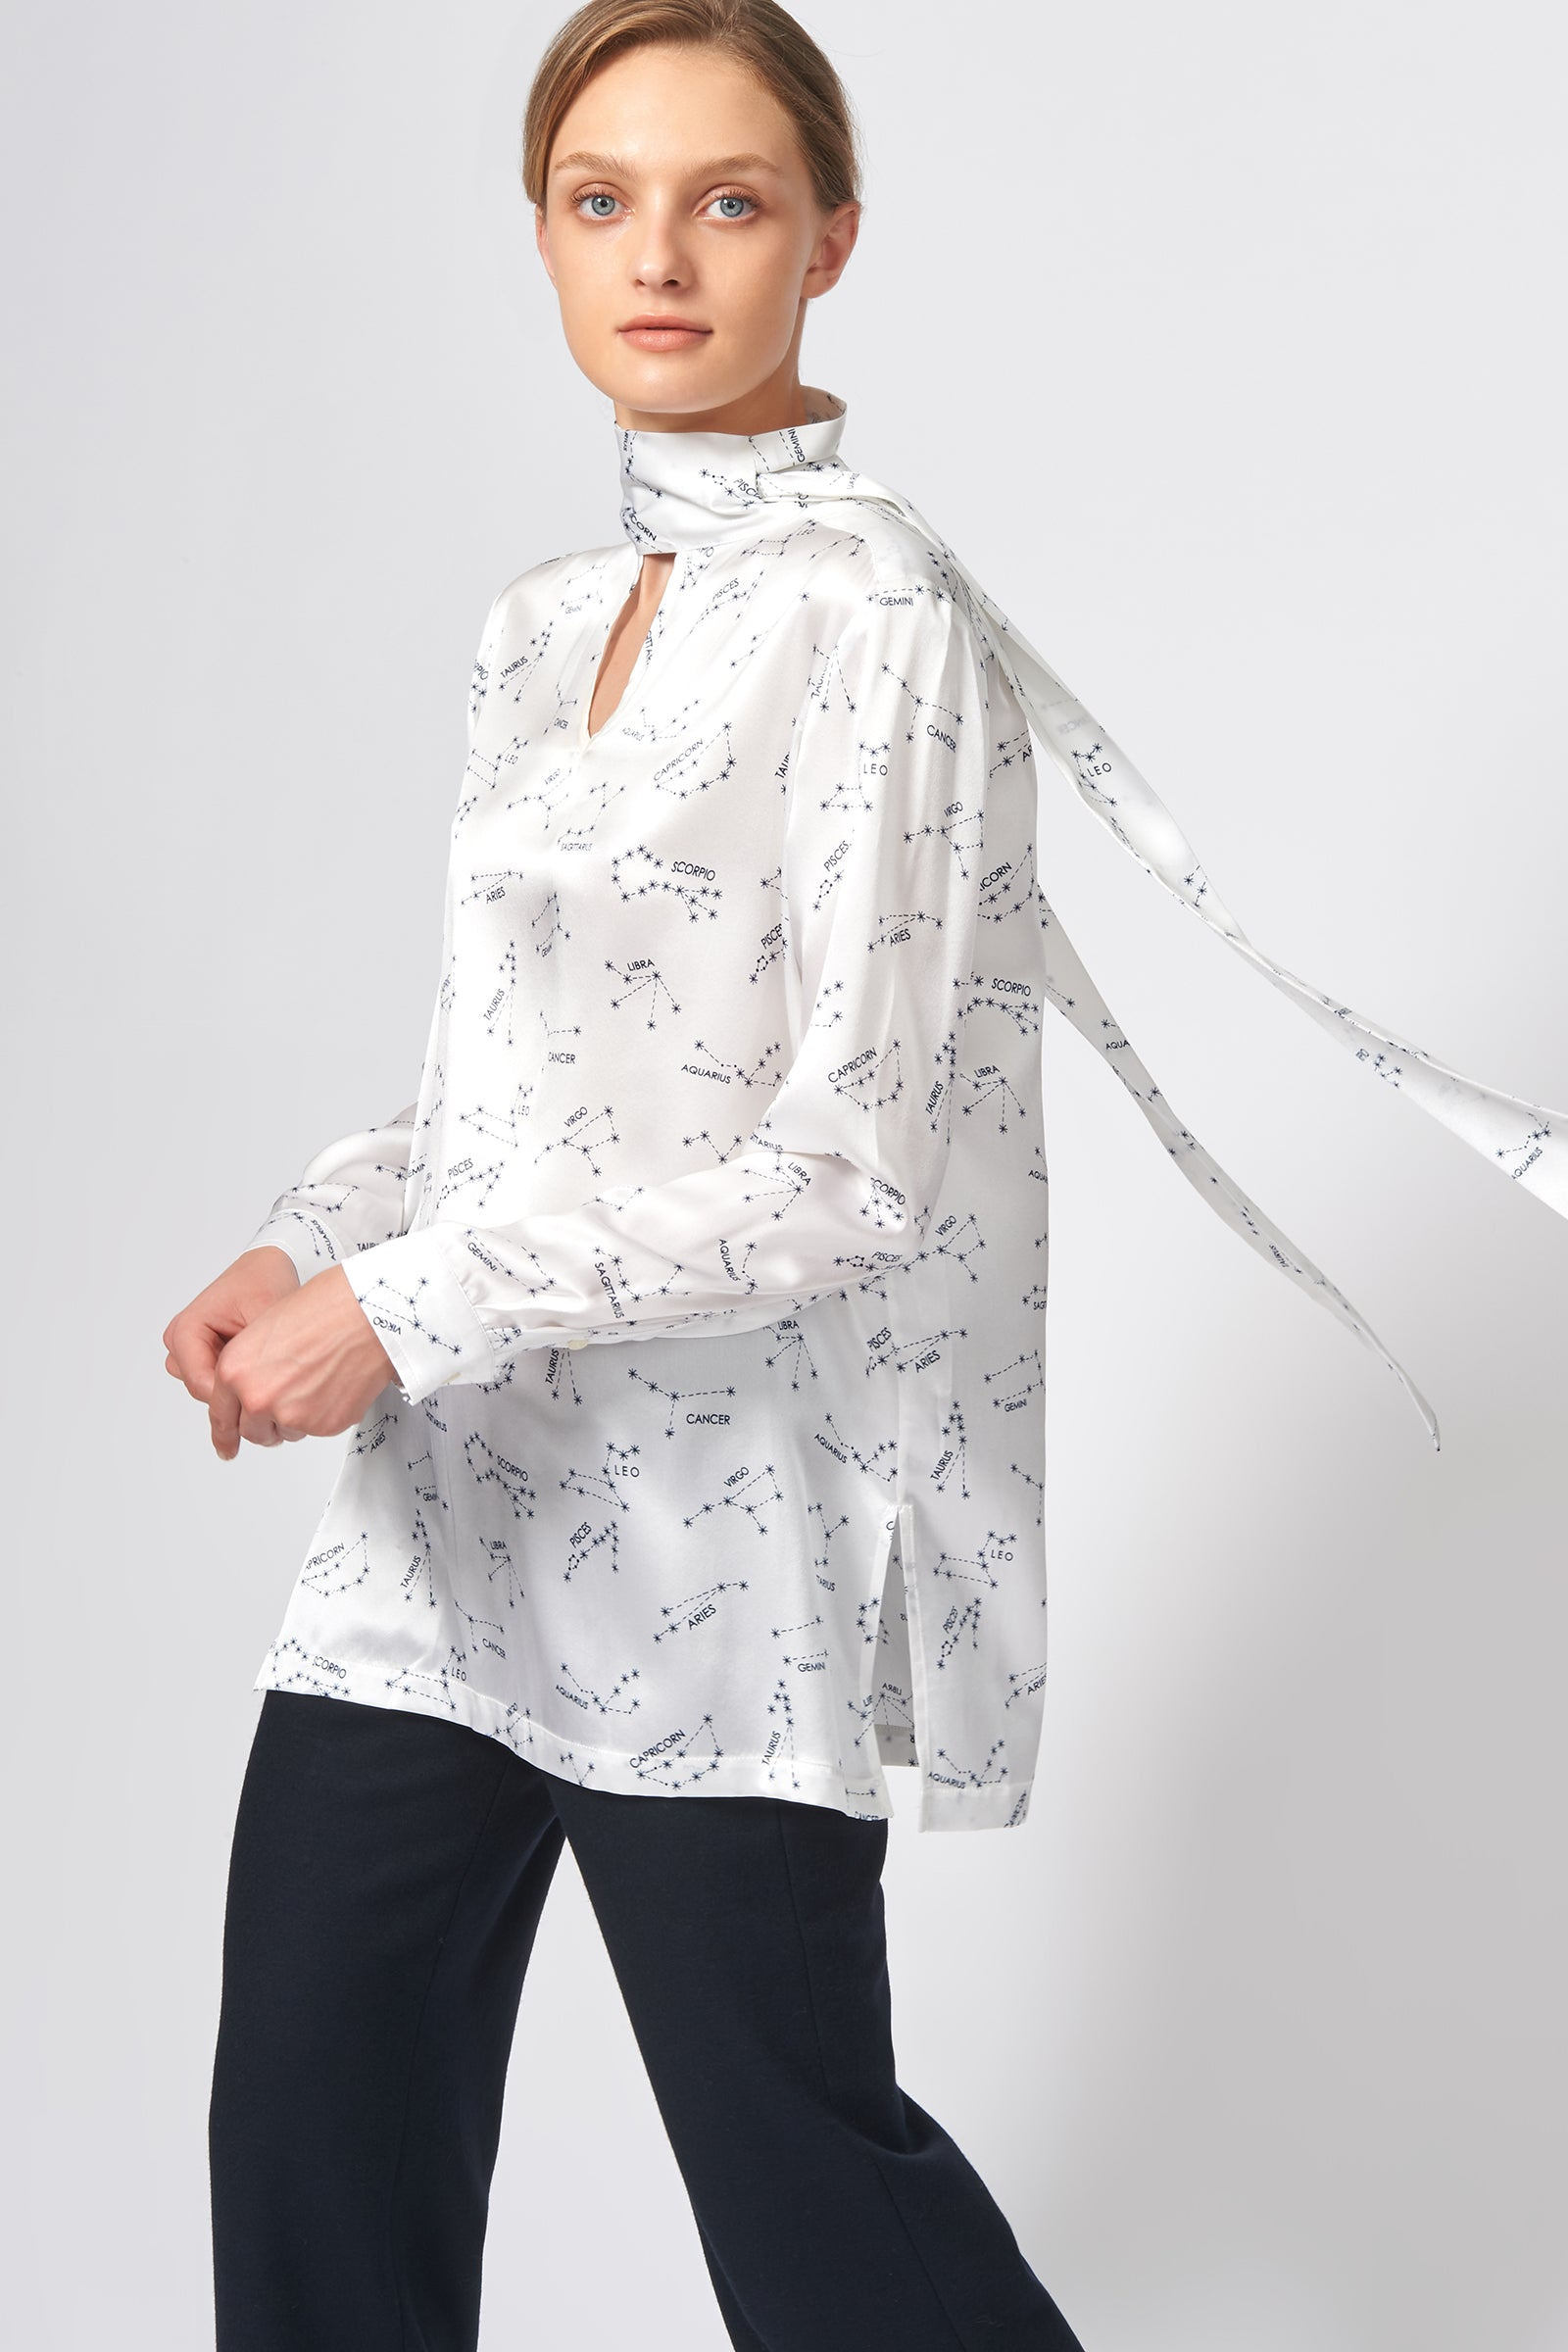 Kal Rieman Scarf Tunic in Ivory Horoscope on Model Front View